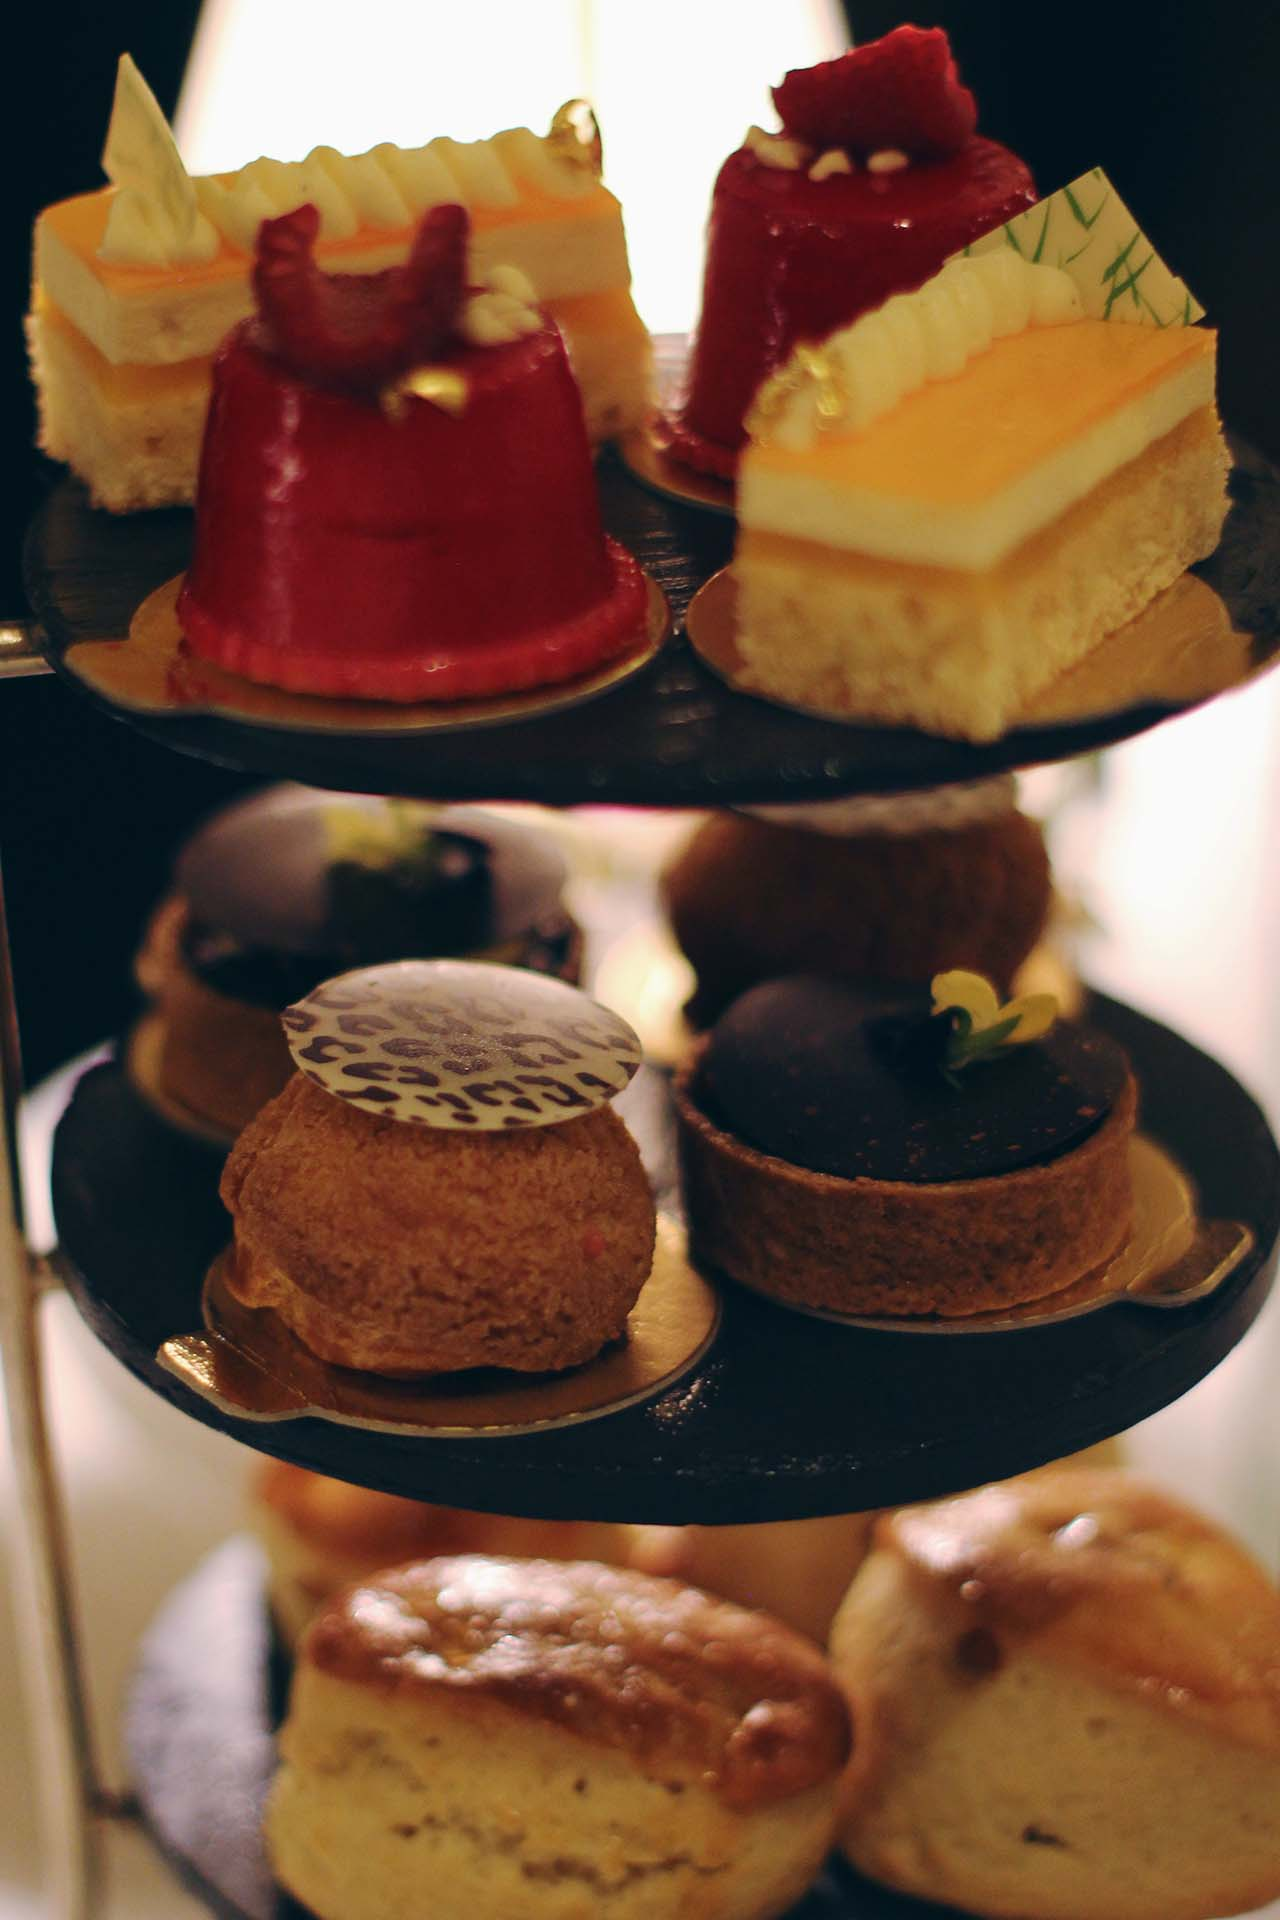 An Afternoon With Oscar: Diptyque Afternoon Tea at Hotel Cafe Royal